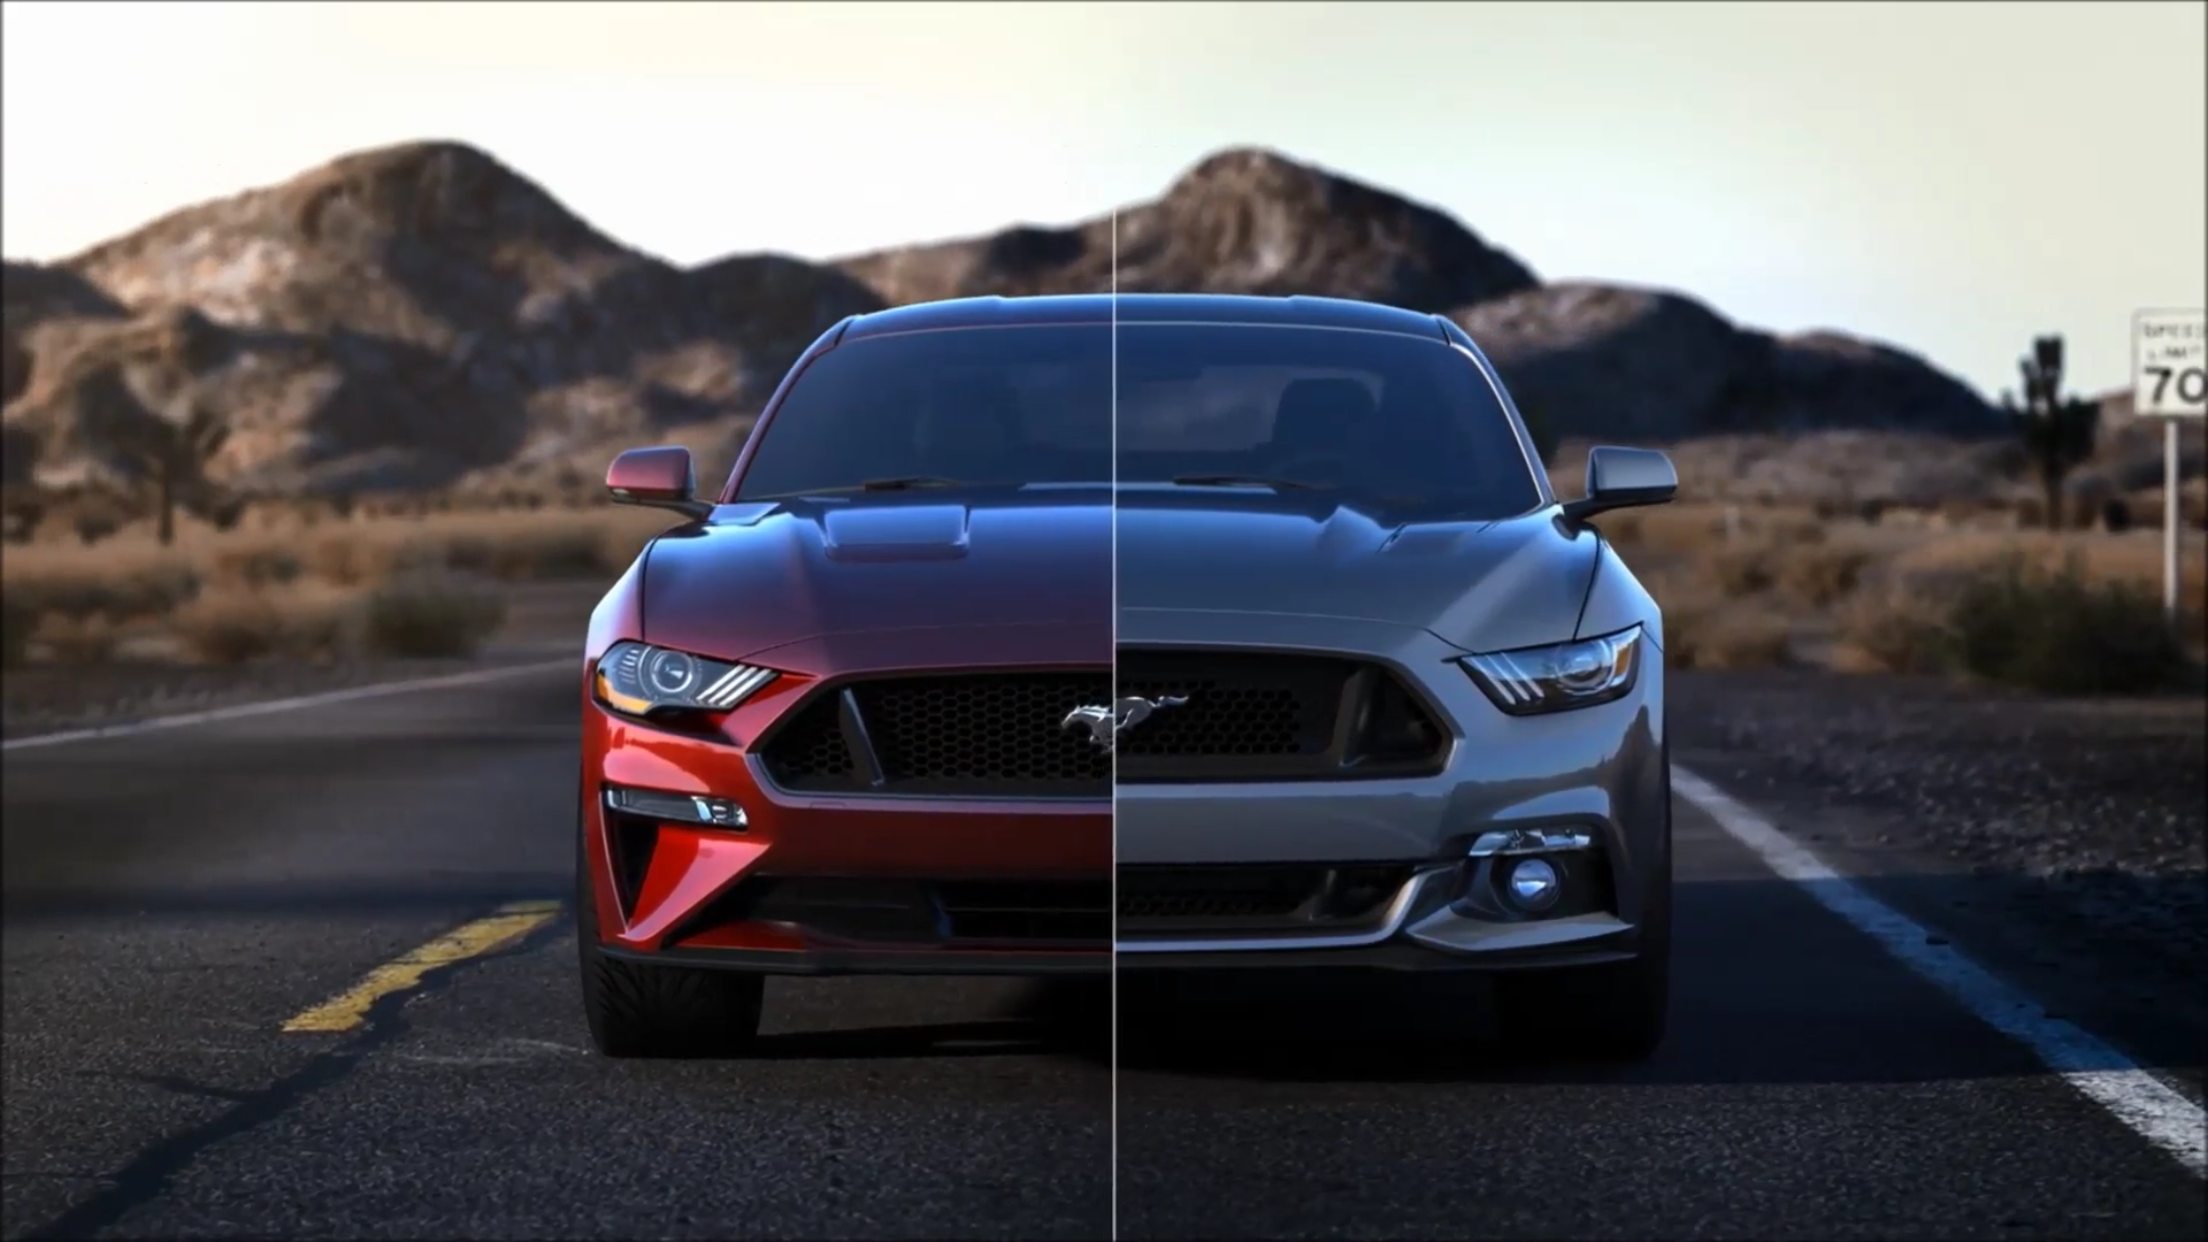 2018 ford mustang gets new styling more power and tech